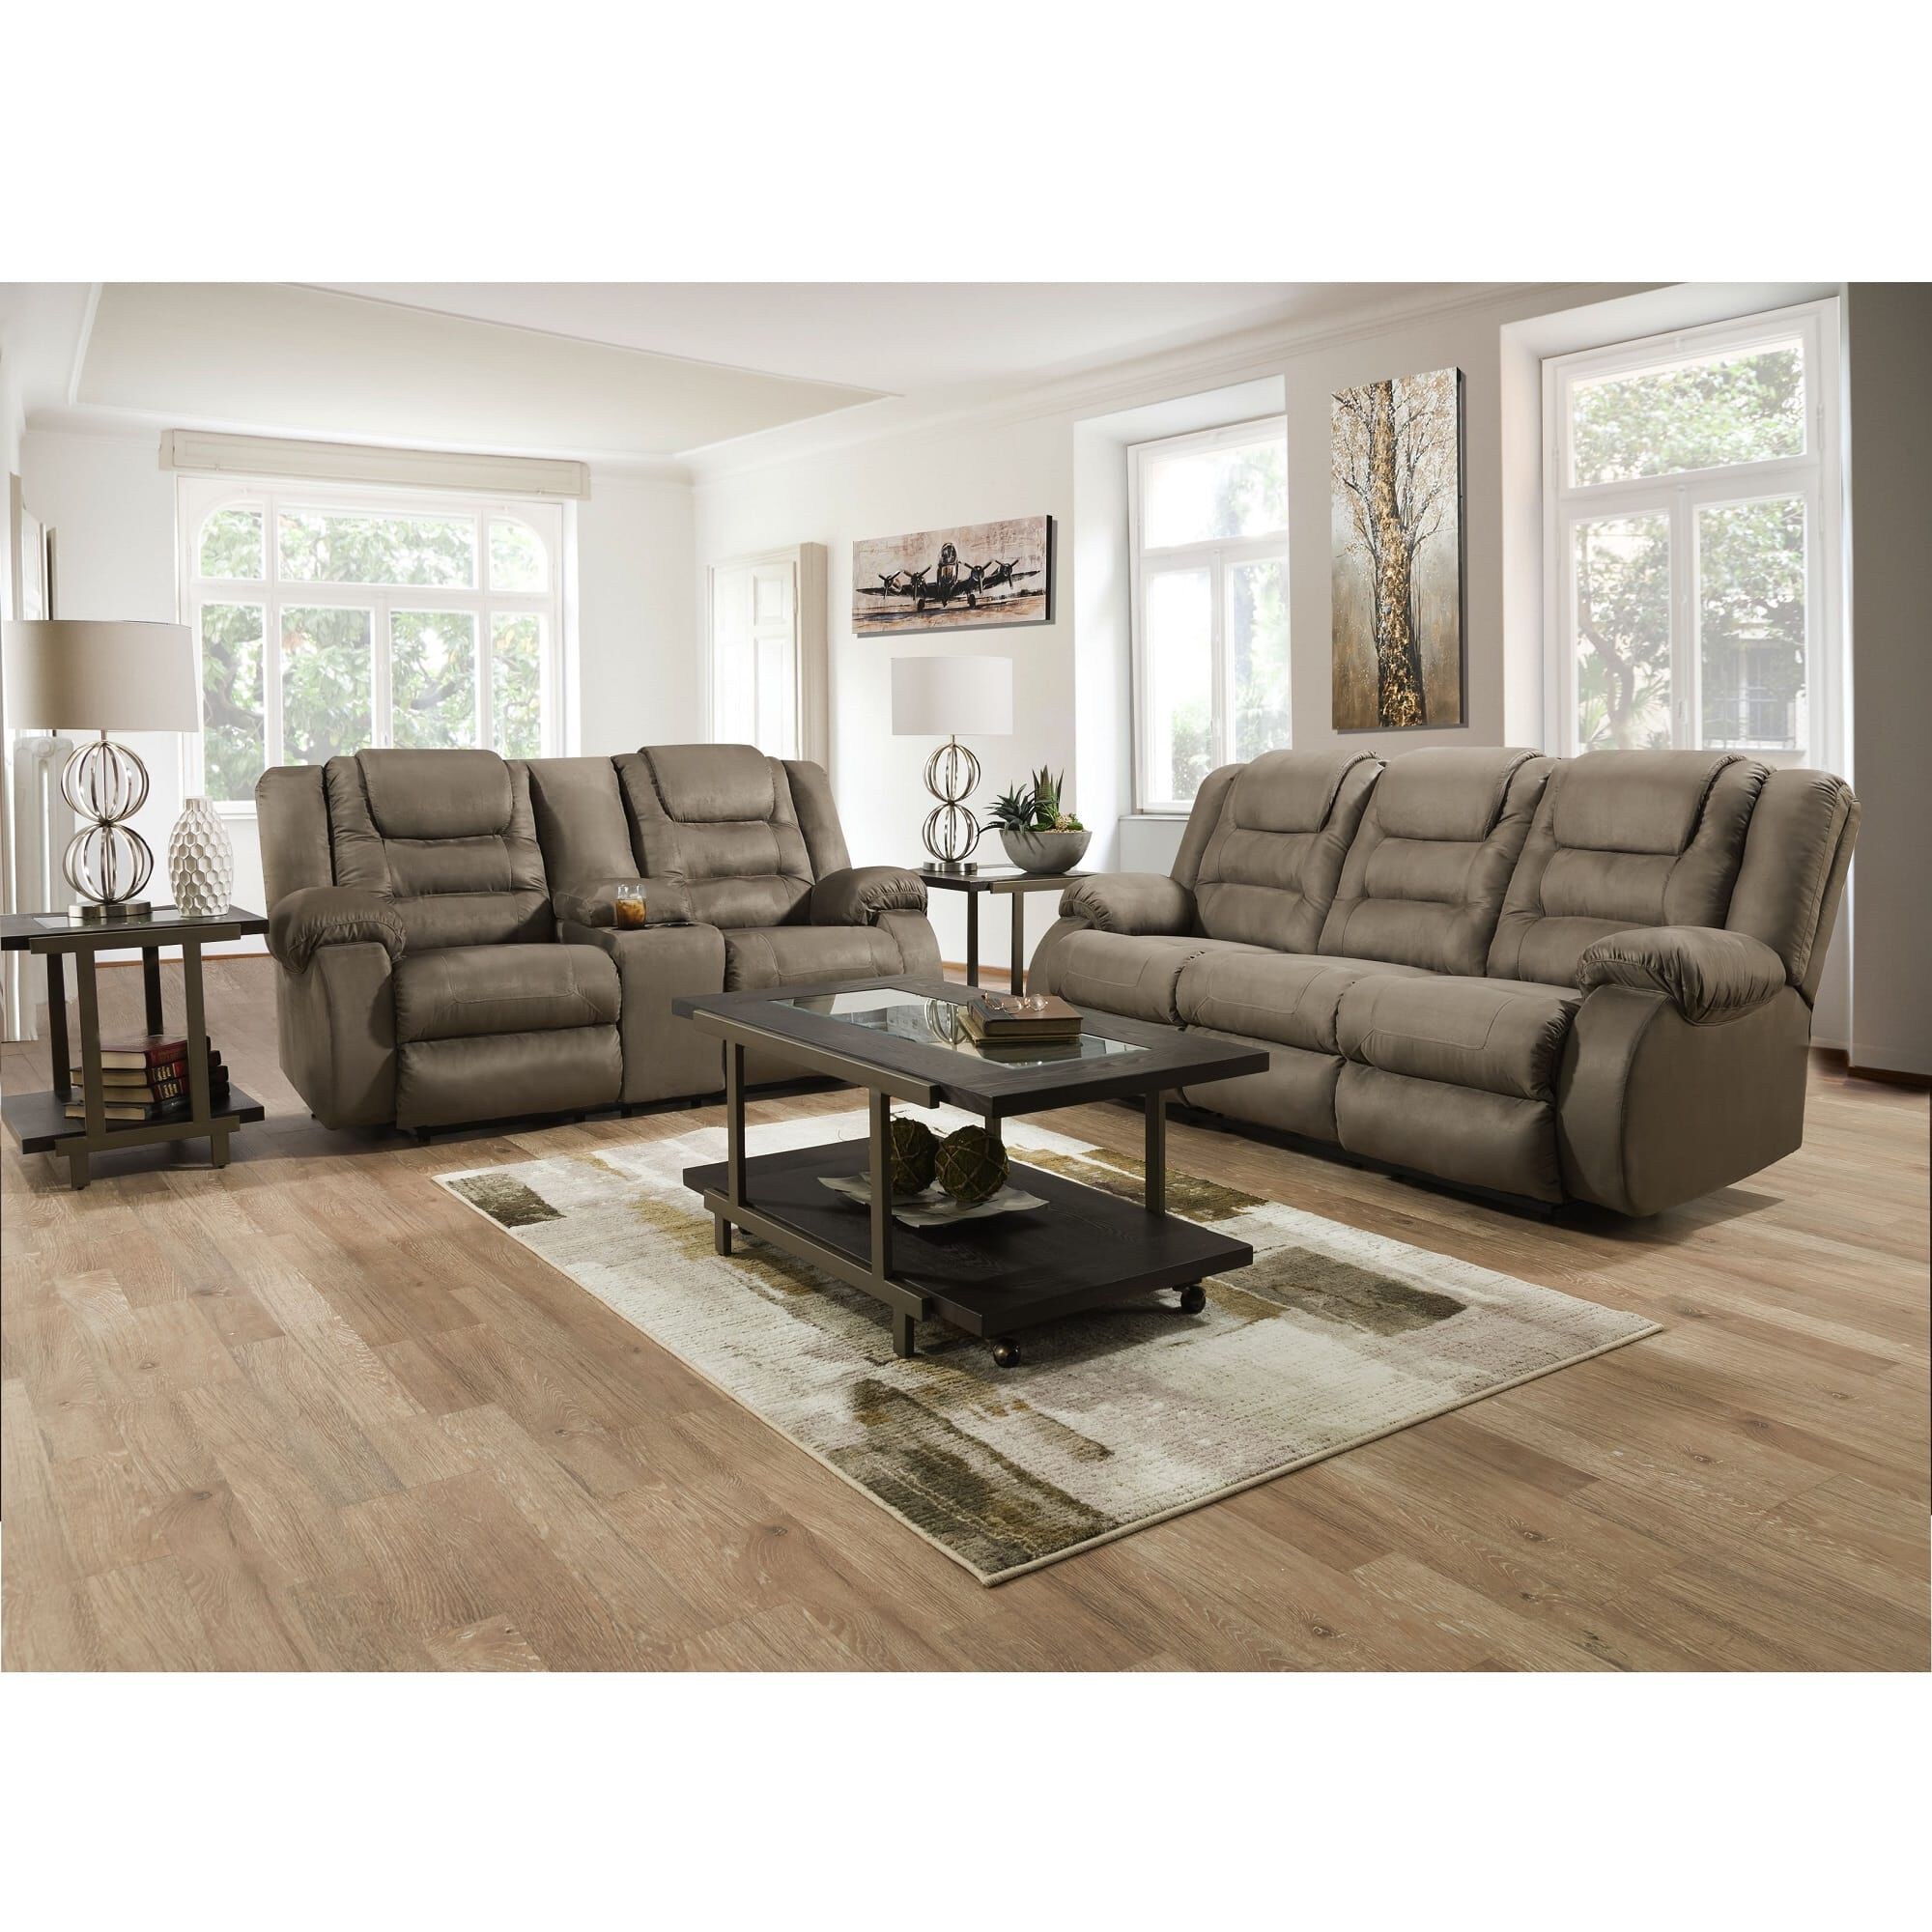 225 & 2-Piece Sheridan Living Room Collection